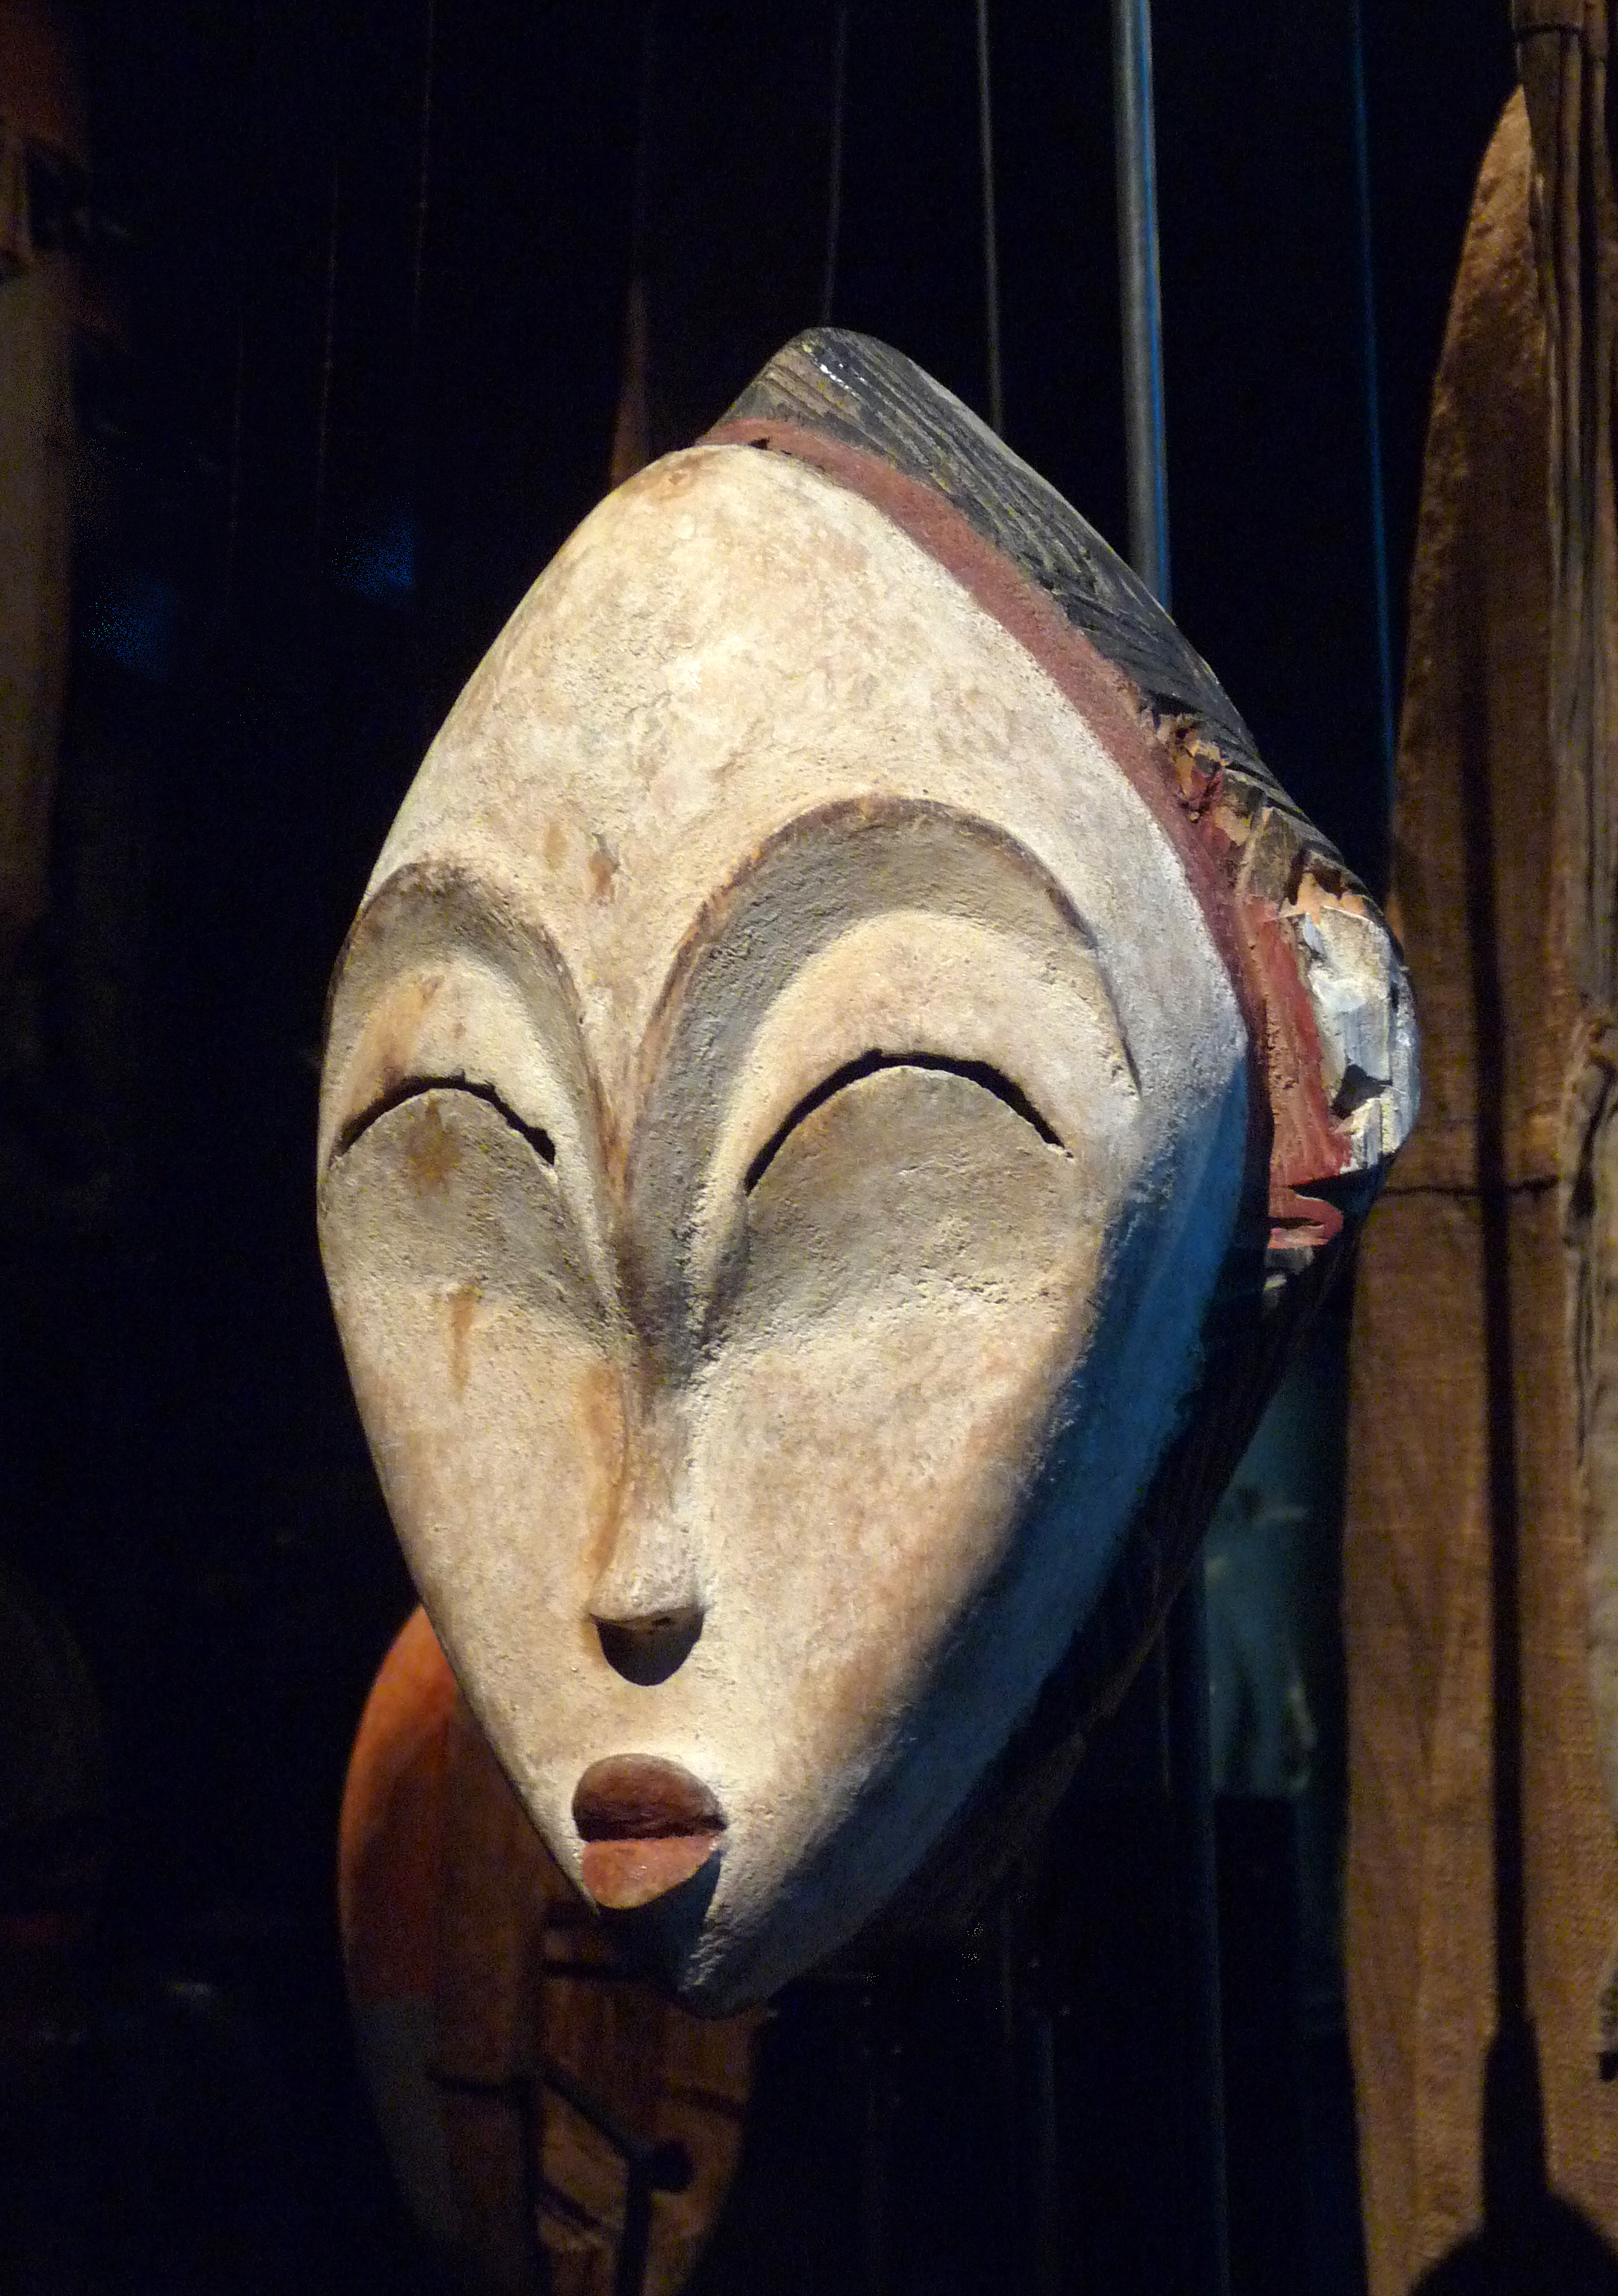 Photograph of a mask from Gabon by Ji-Elle, CC BY-SA 3.0, https://commons.wikimedia.org/w/index.php?curid=19776603